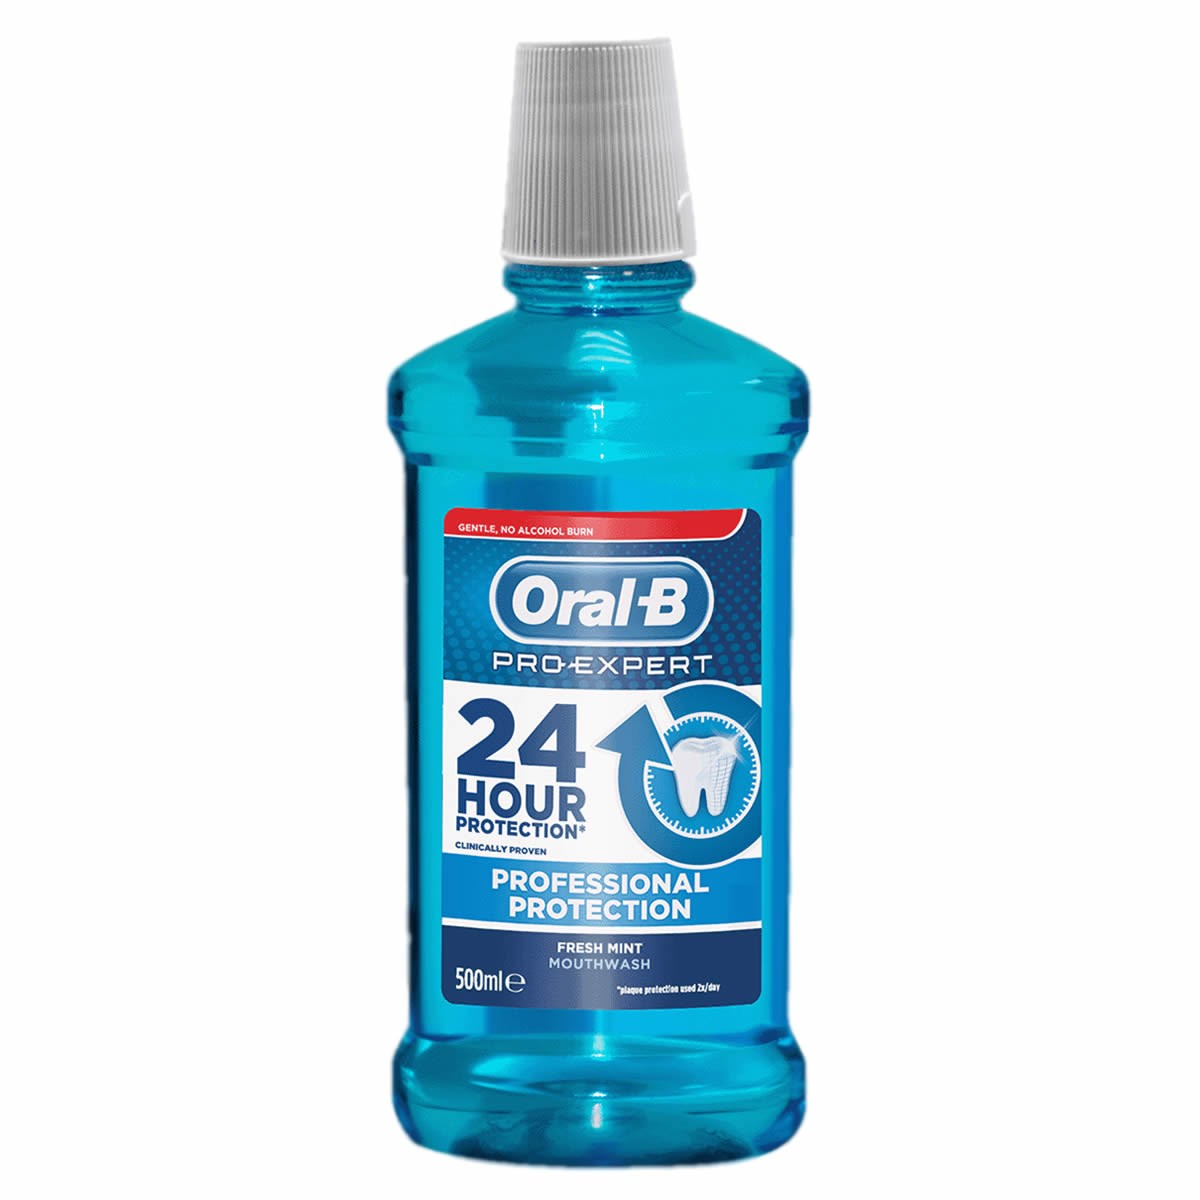 Oral-B Pro-Expert Professional Protection Mouthwash